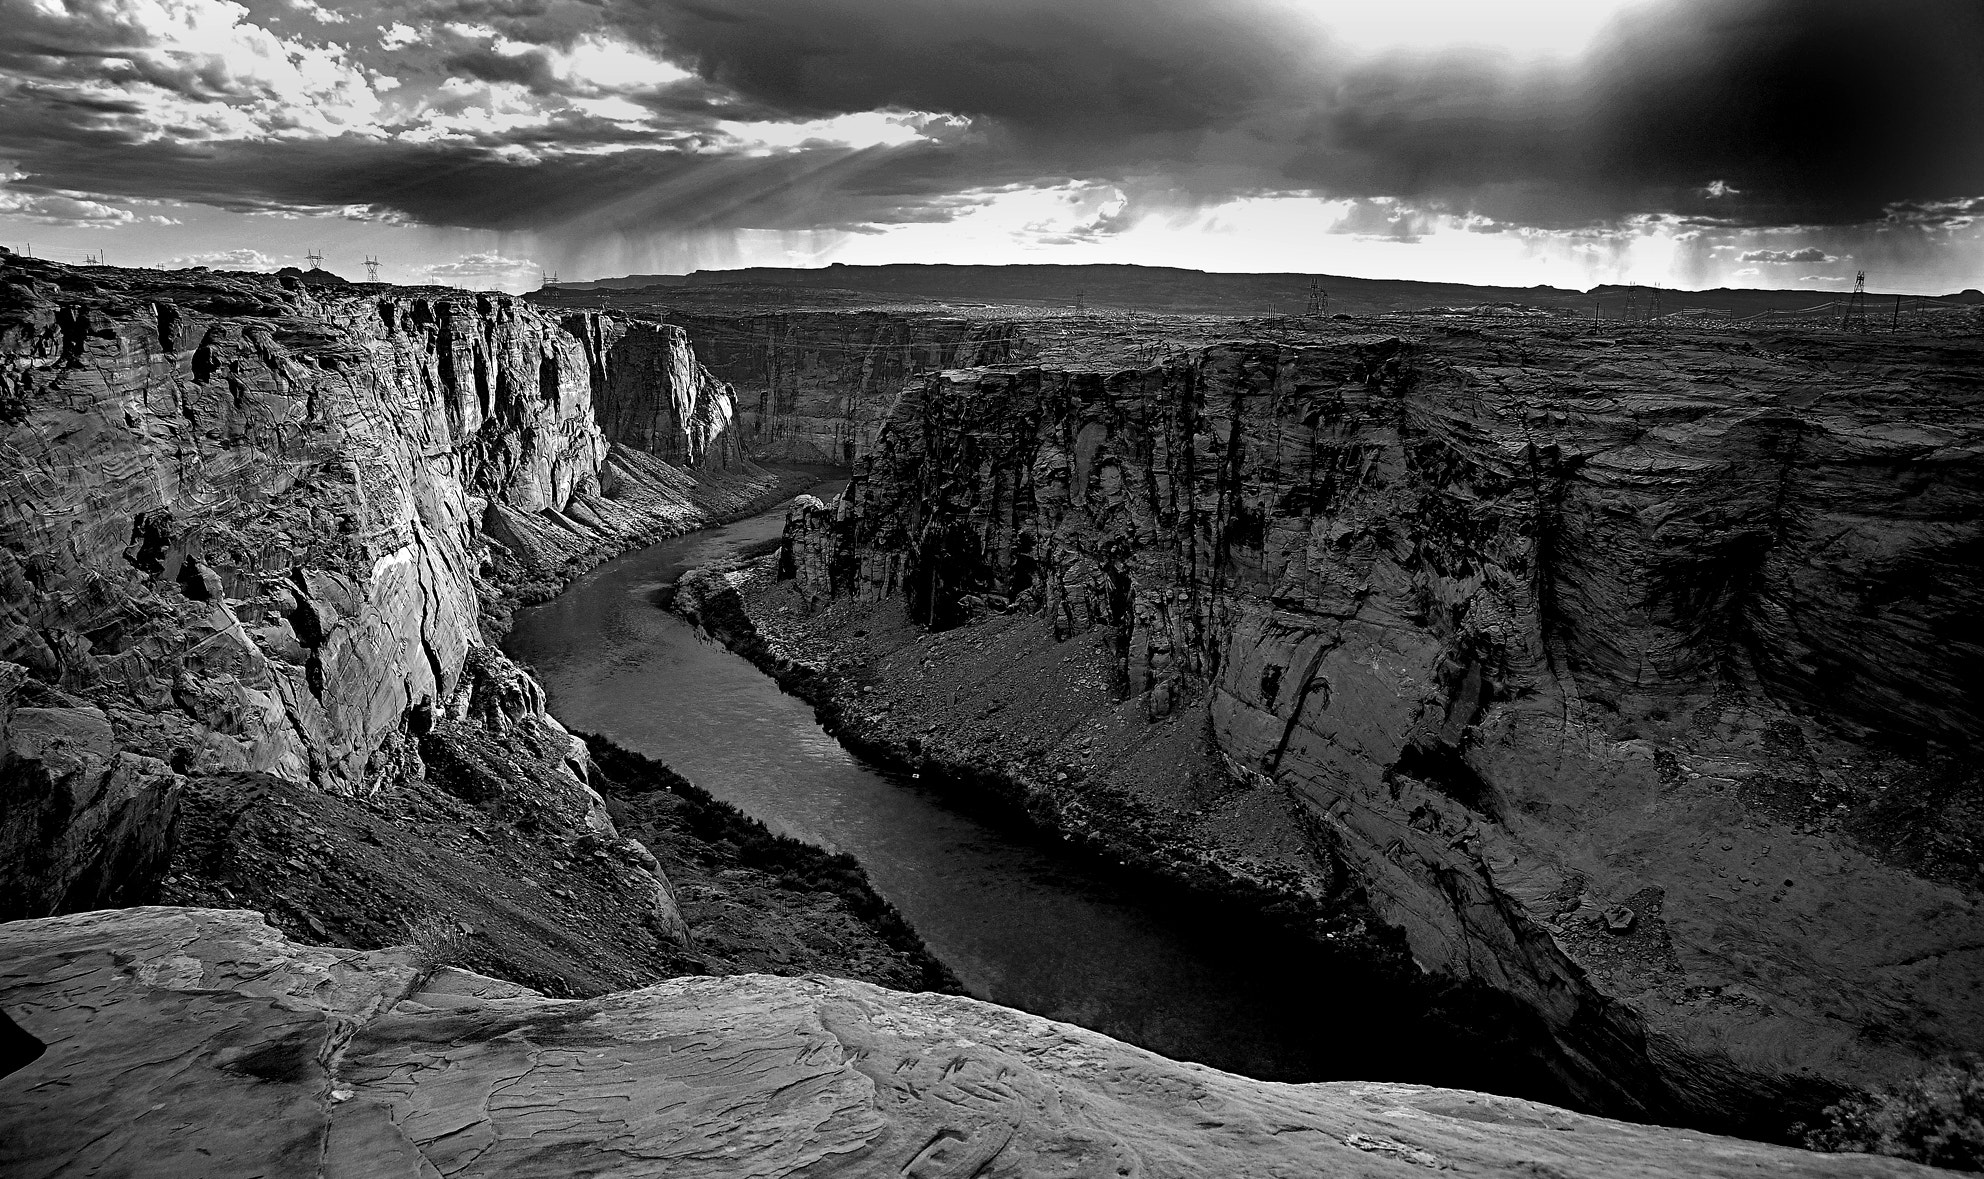 Photograph Colorado river by Franco Orsi on 500px